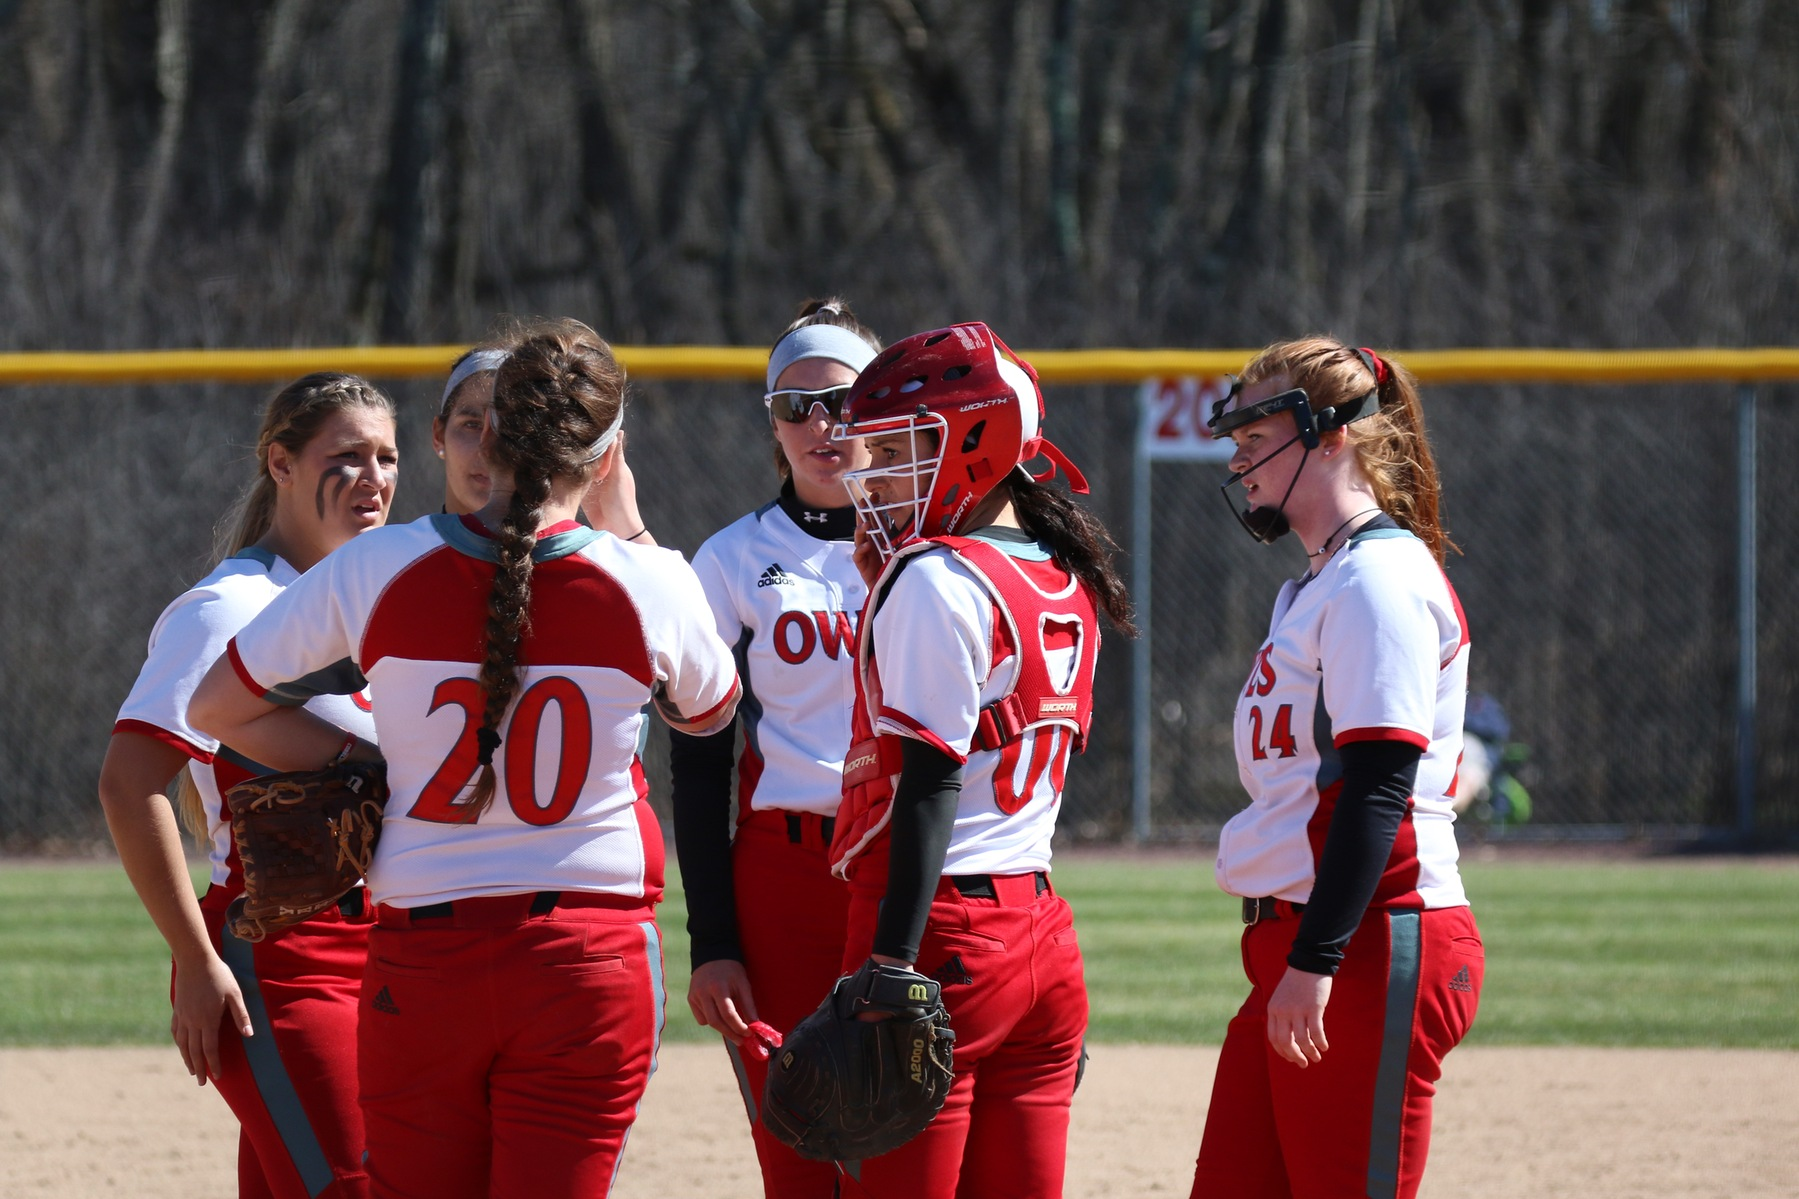 Softball Swept In Conference Doubleheader By Plymouth State